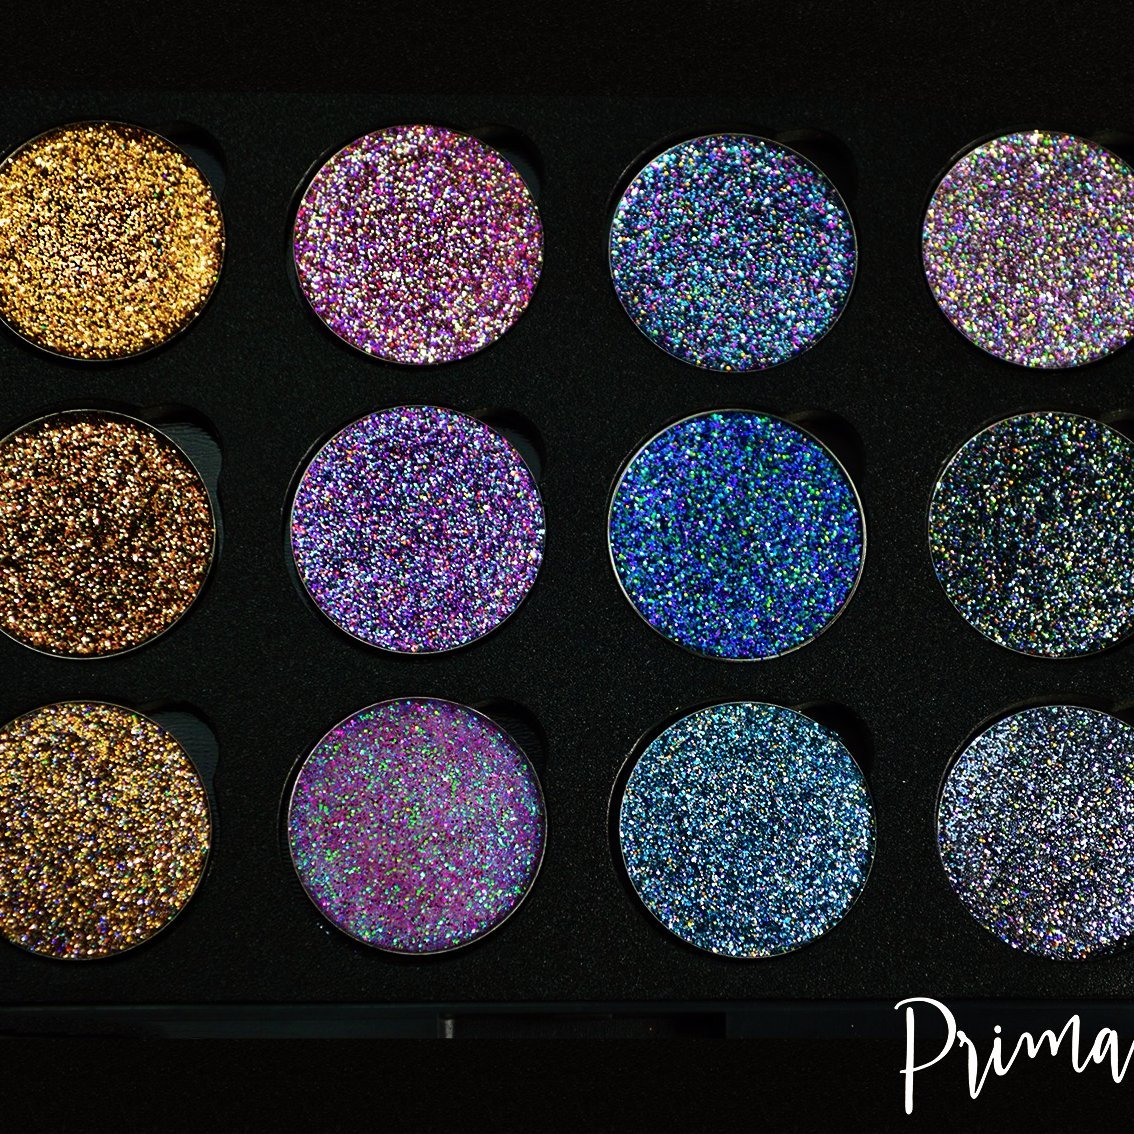 Prima Makeup Colour Shifting Pressed Glitter Eyeshadow Lips Set - Chameleon Collection